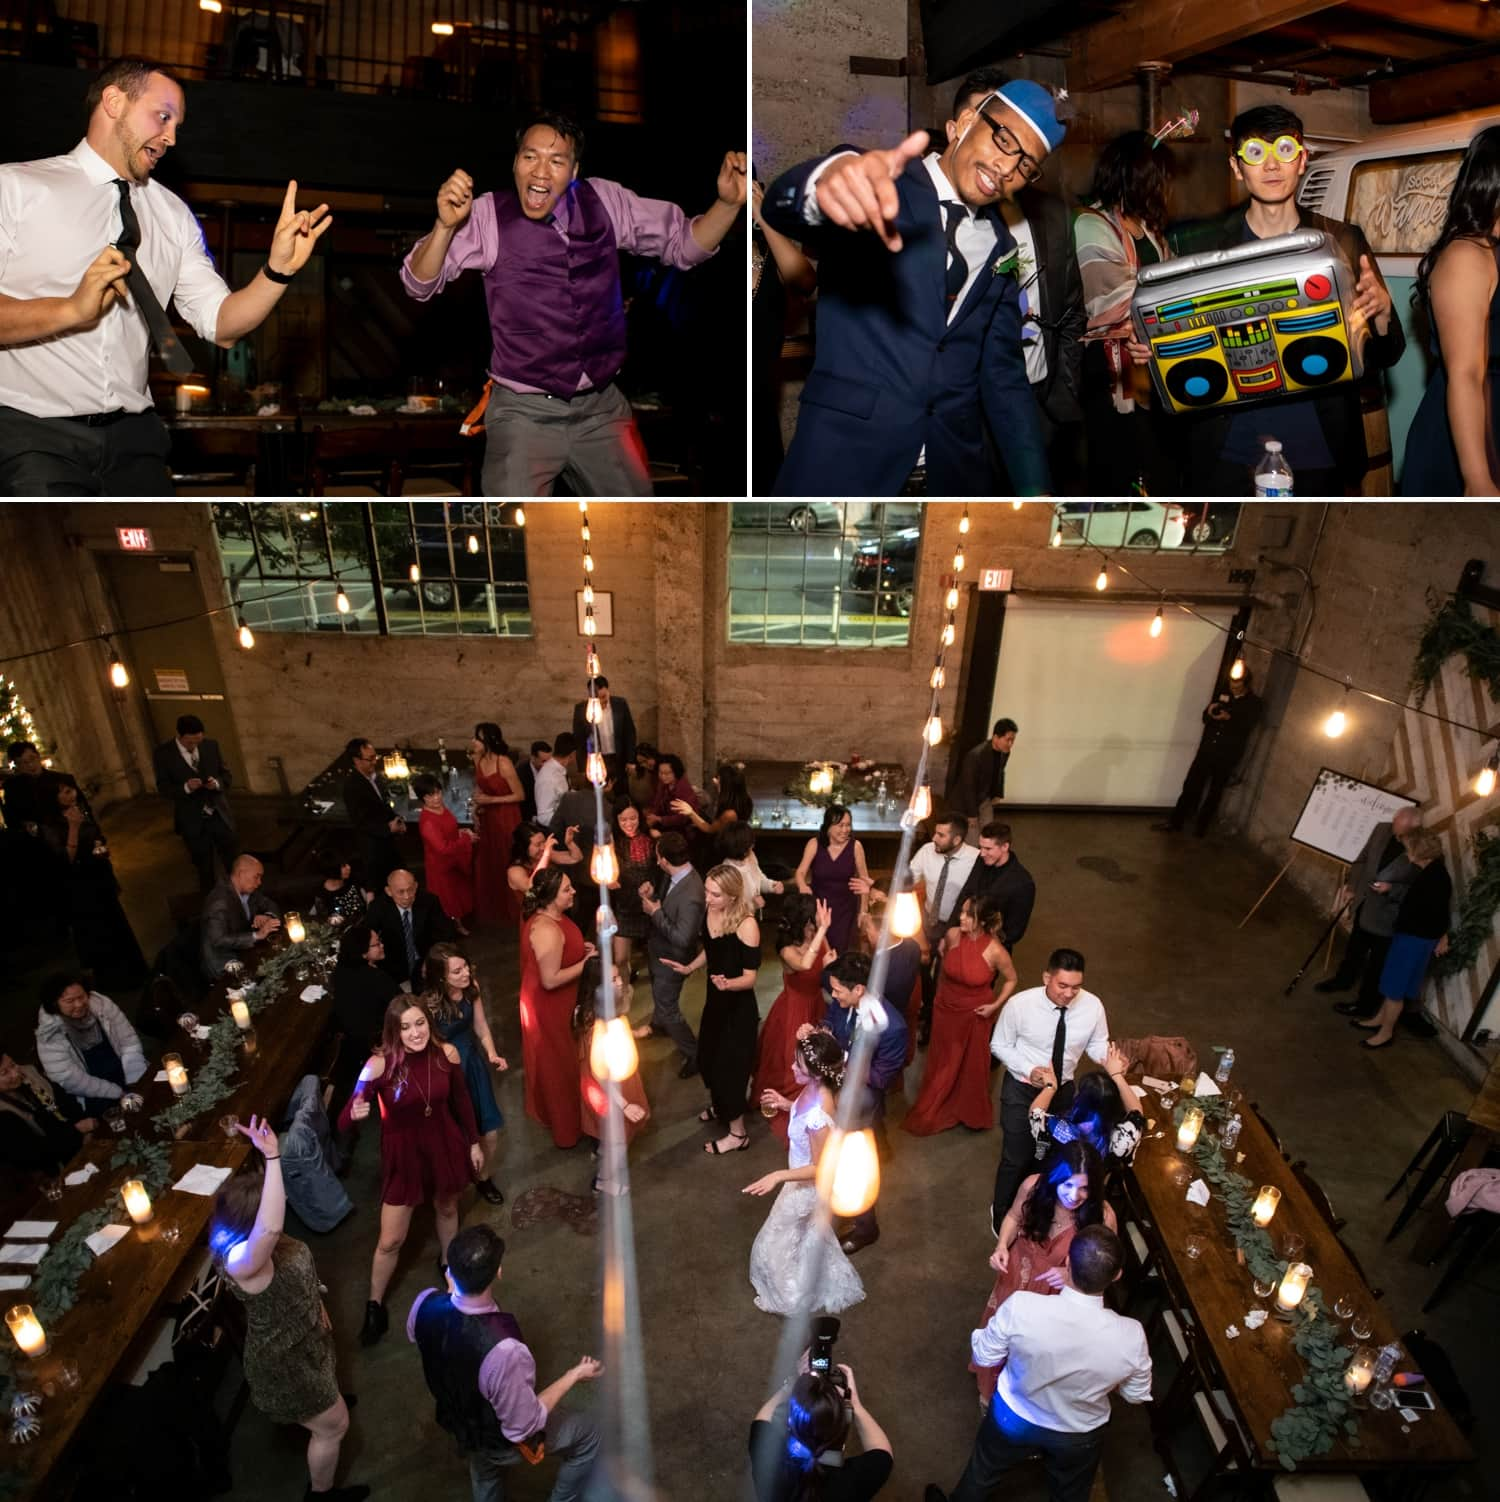 People dancing at a wedding at Luce Loft.